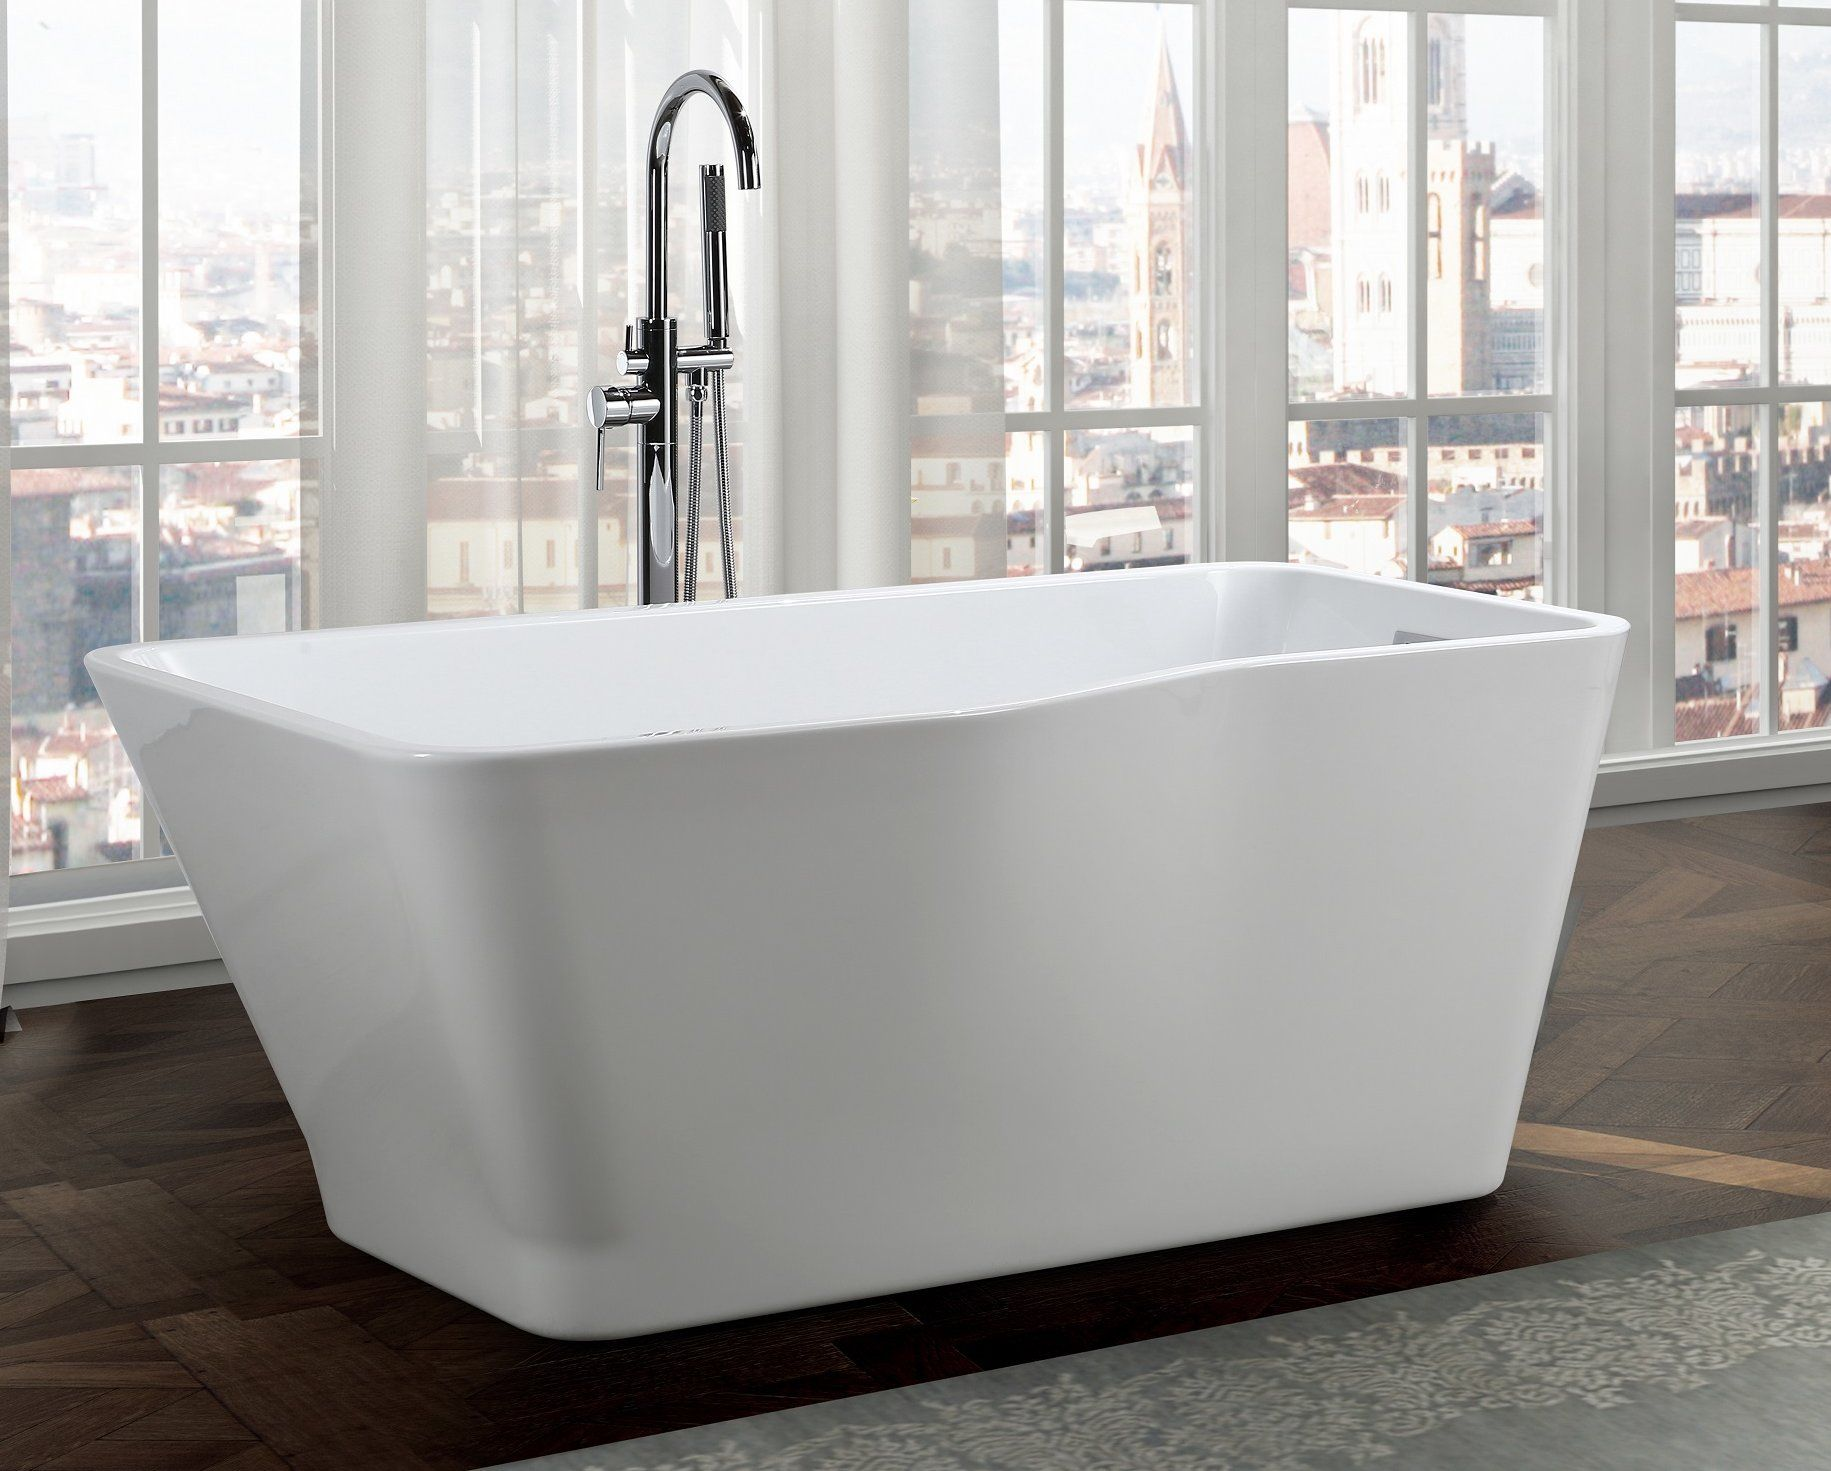 Bathtub Products House Construction Planset of dining room